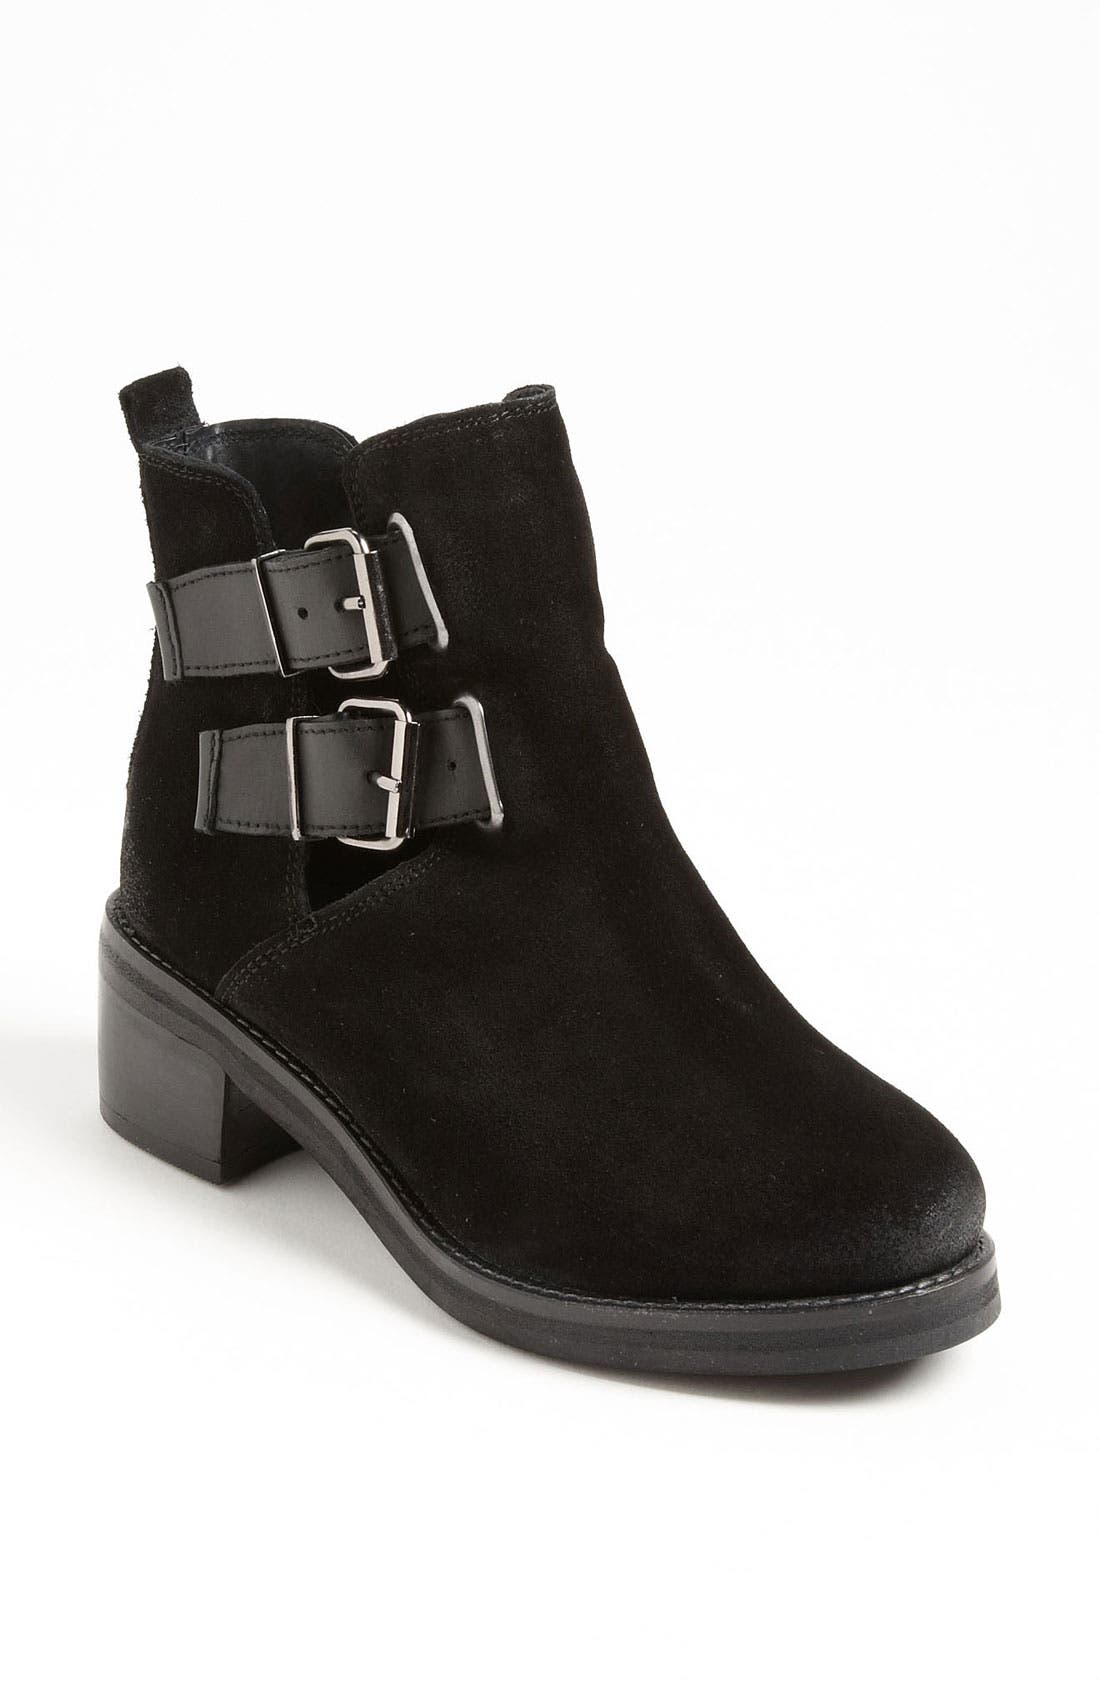 Alternate Image 1 Selected - Topshop 'Adonis2' Suede Boot